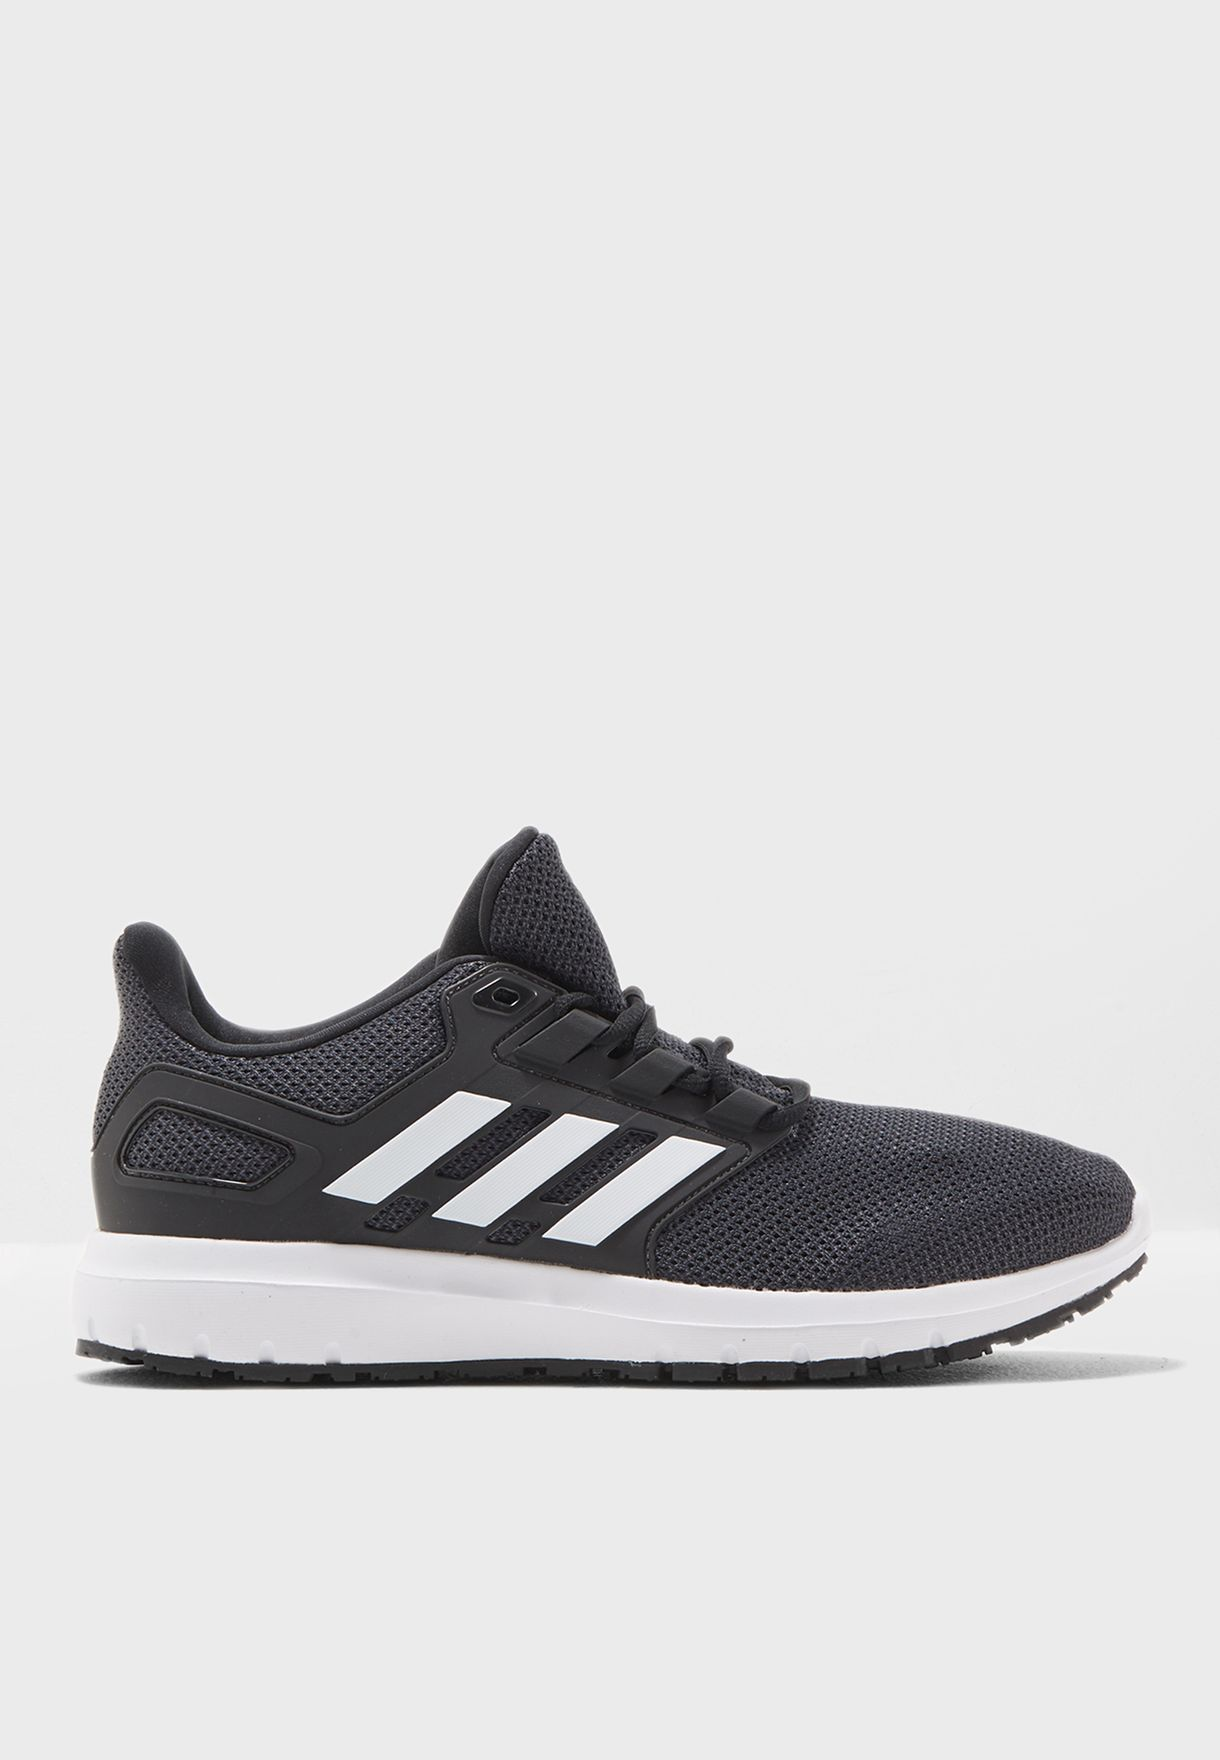 Shop adidas black Energy Cloud 2 CG4058 for Men in UAE - AD476SH20BGD e2a8ee5df5c79